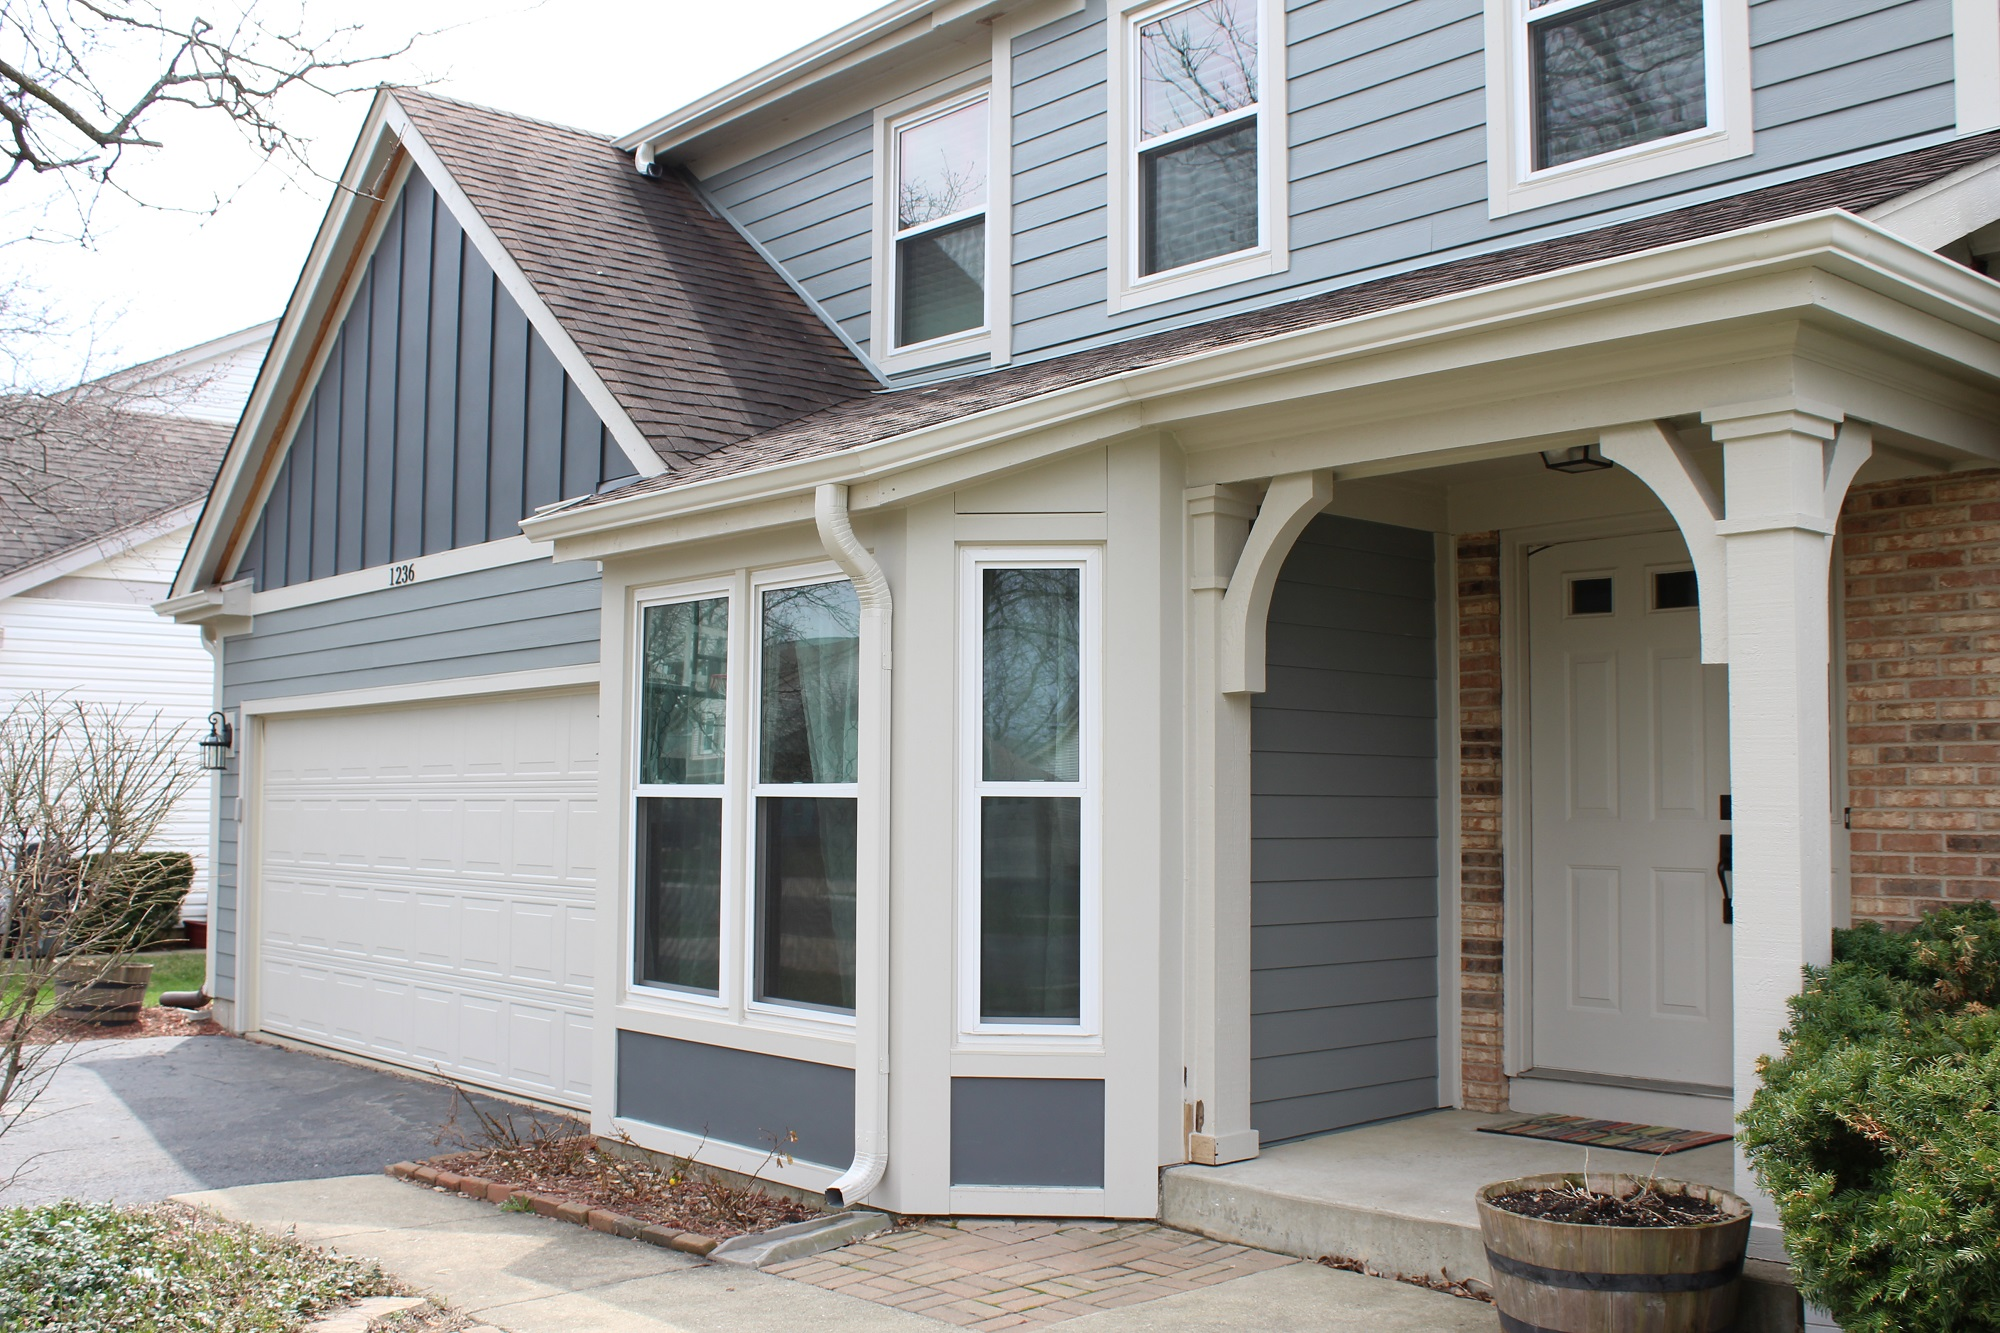 New windows, gutters and siding